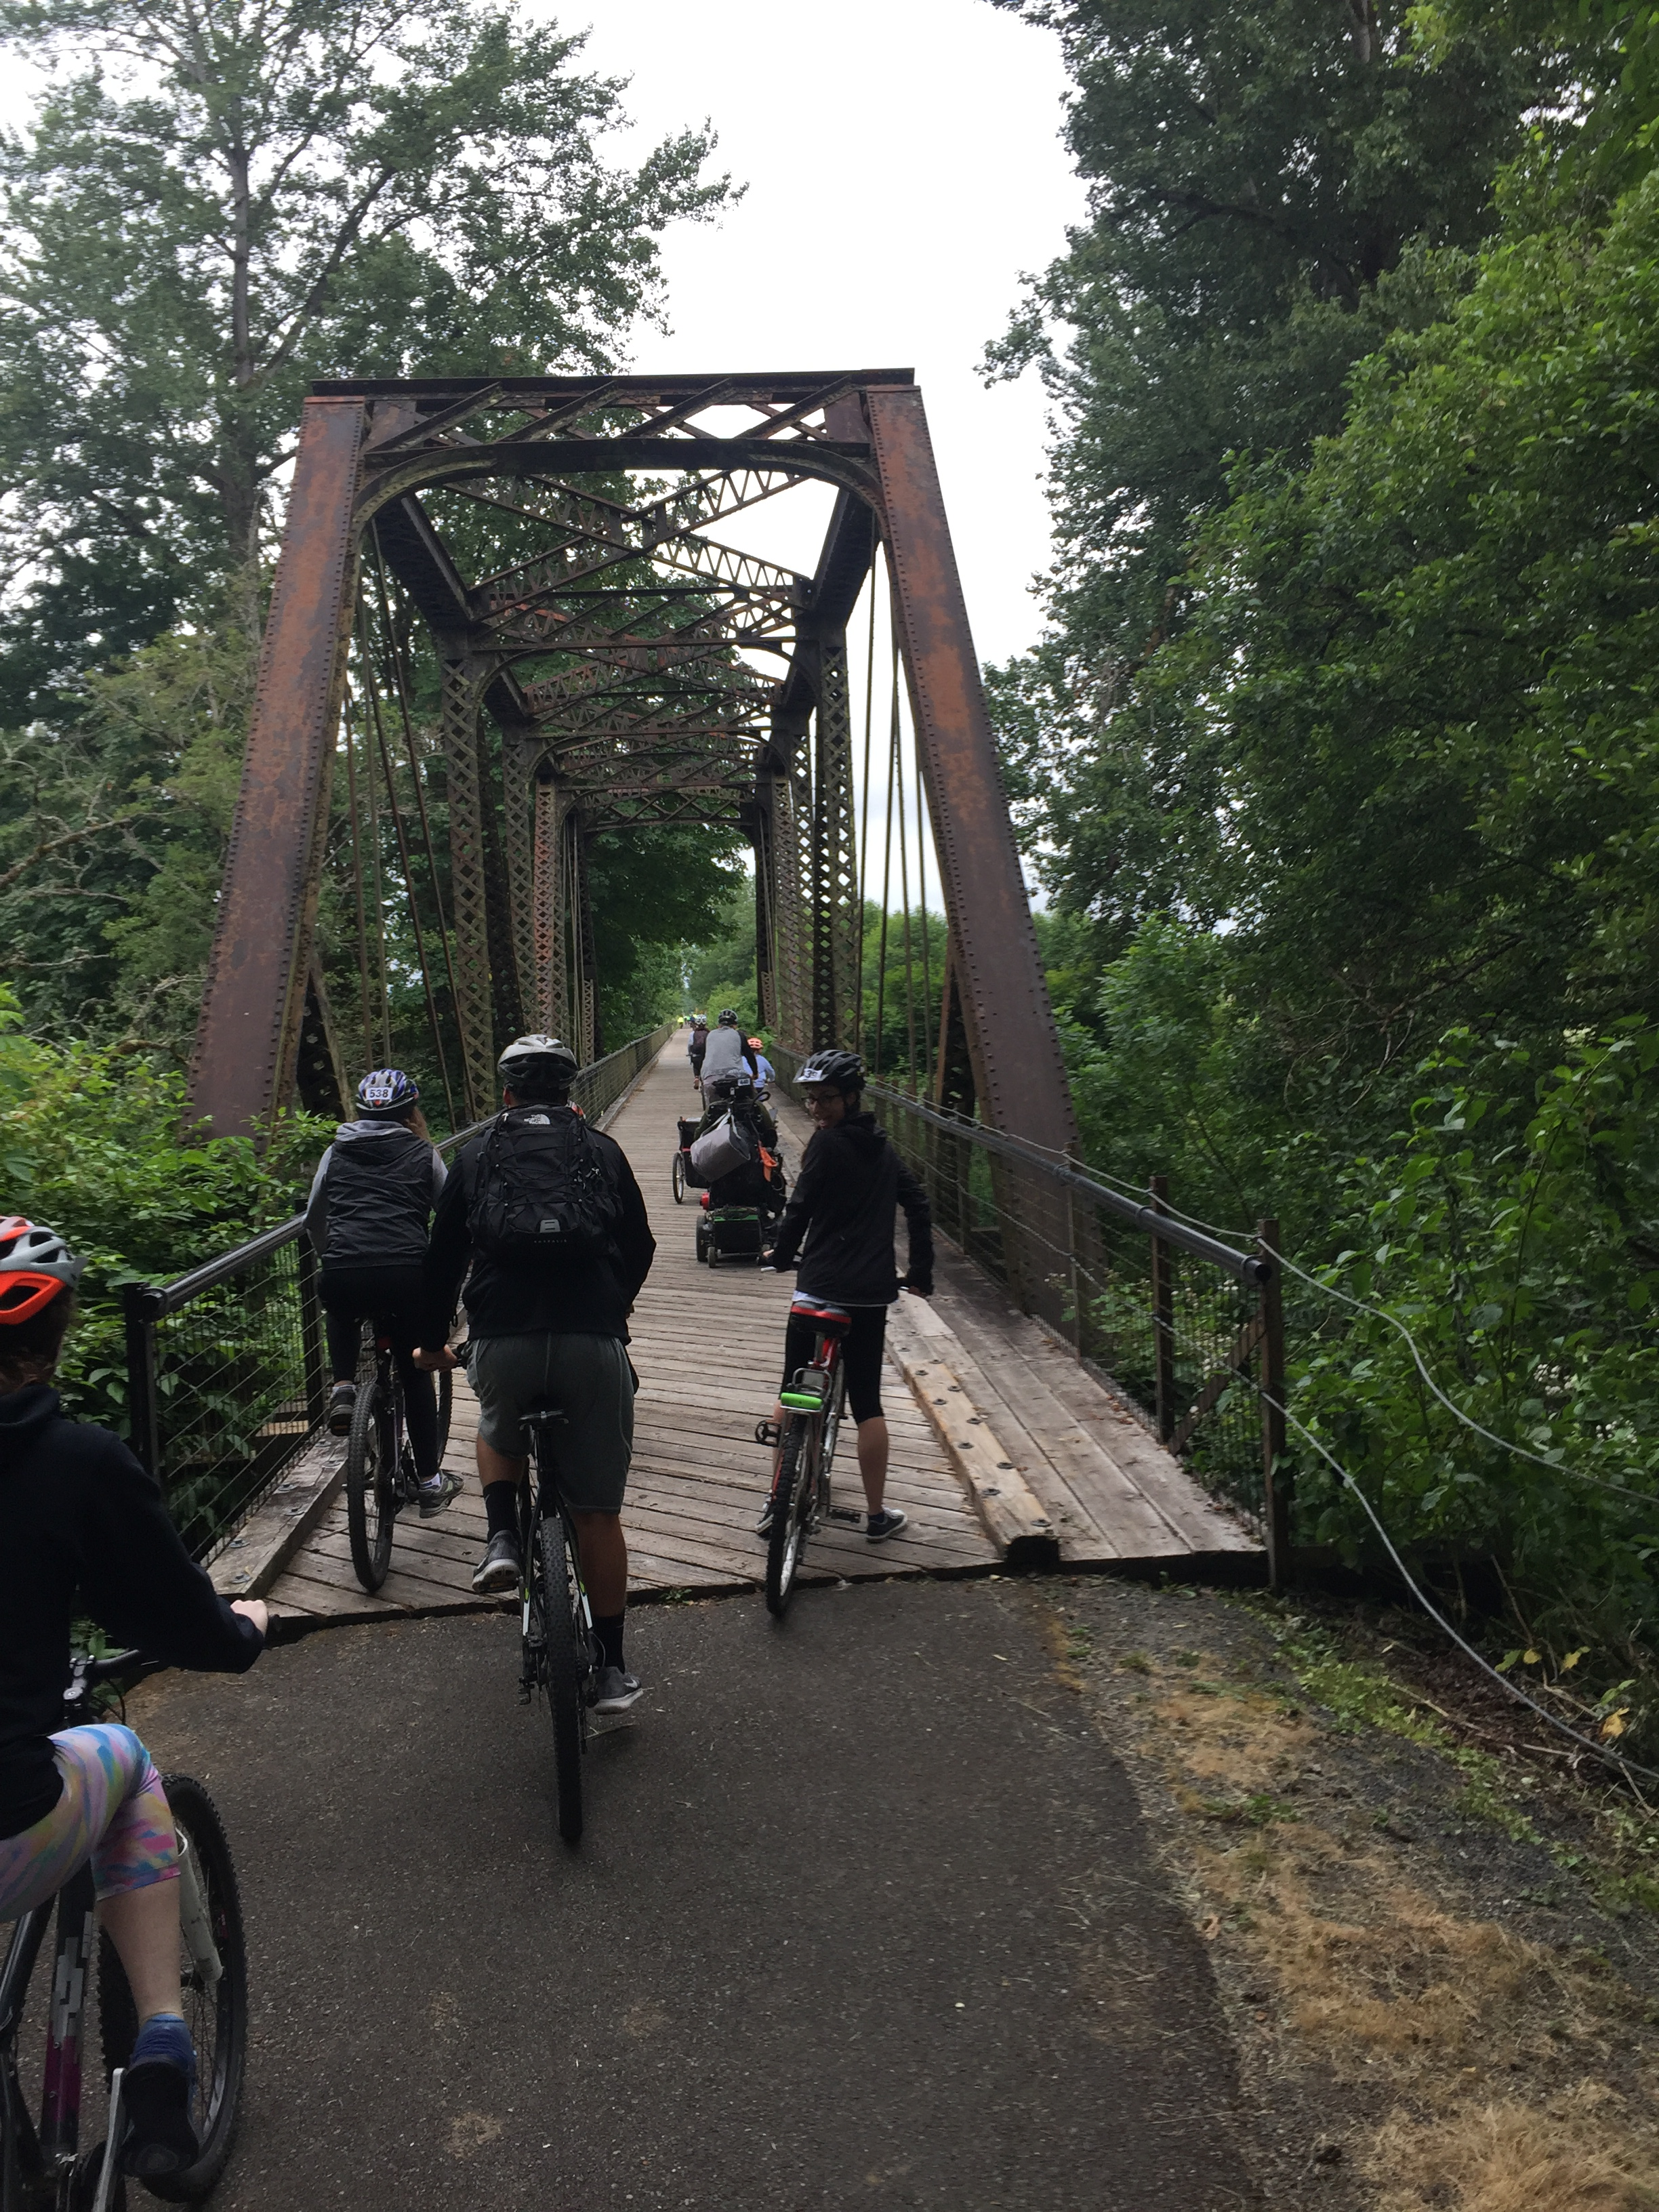 Bridges, transitions, and plenty of riders